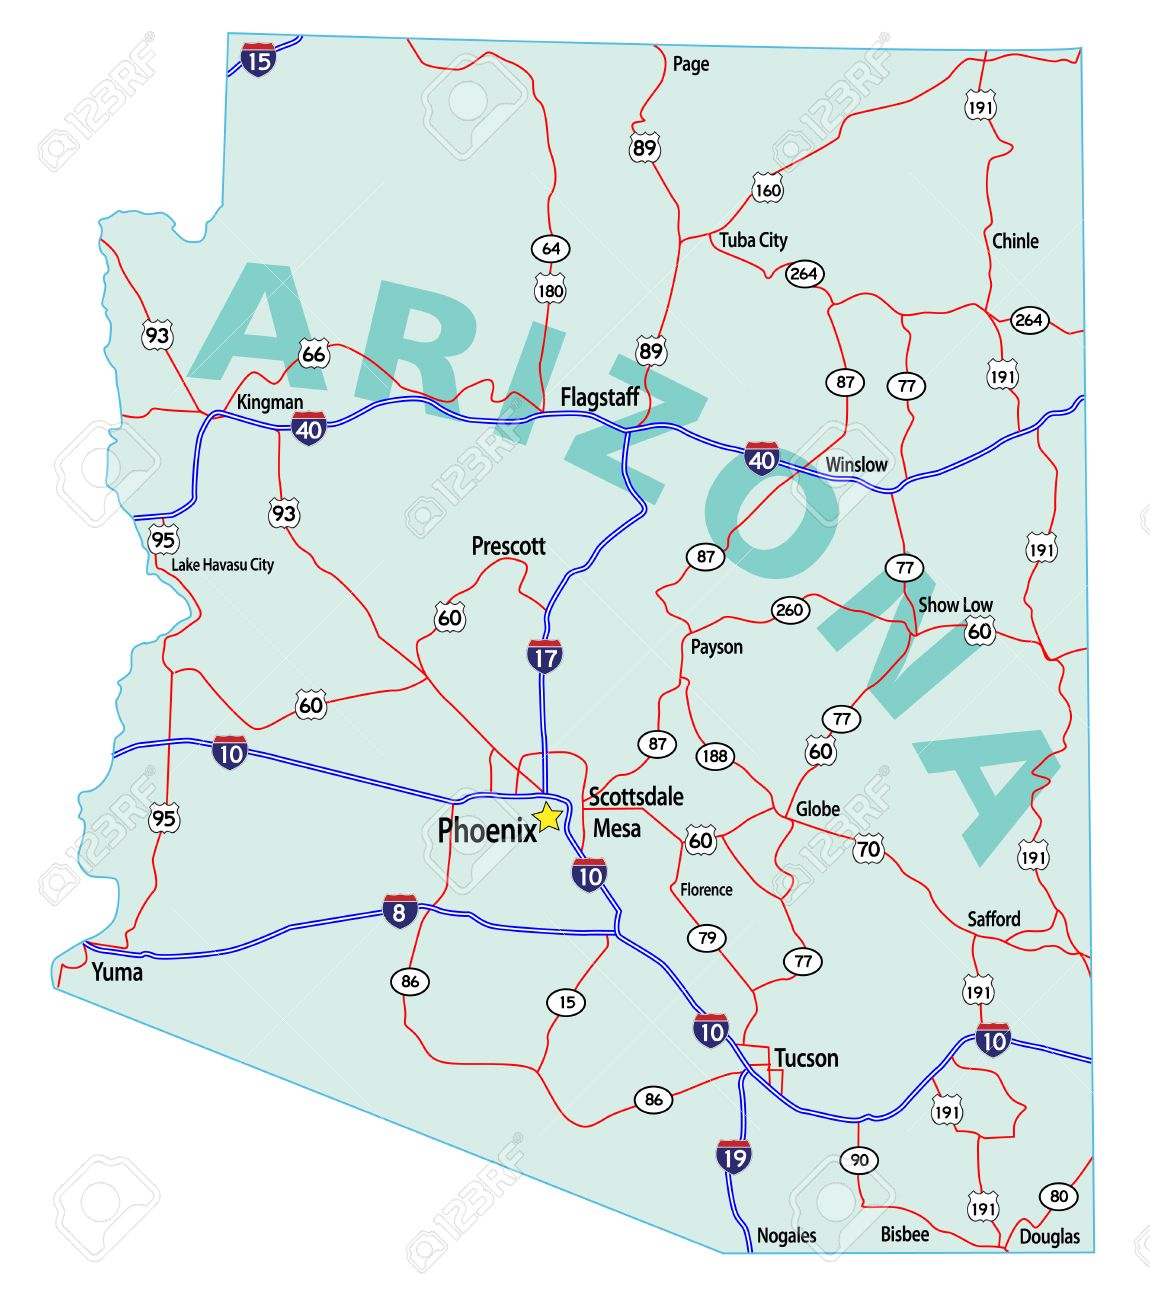 Arizona State Road Map With Interstates US Highways And State